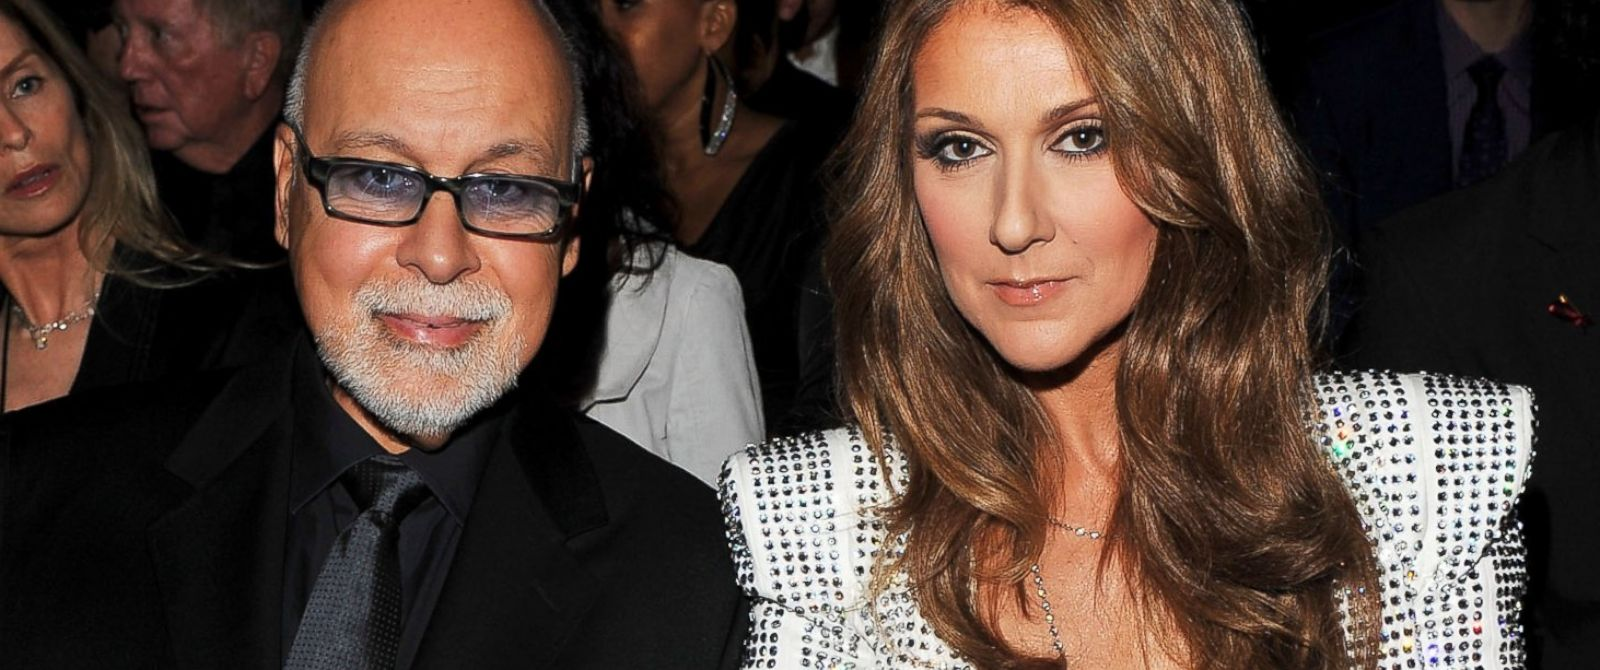 PHOTO: Celine Dion, right, and her husband Rene Angelil, left, are pictured on Jan. 31, 2010 in Los Angeles.